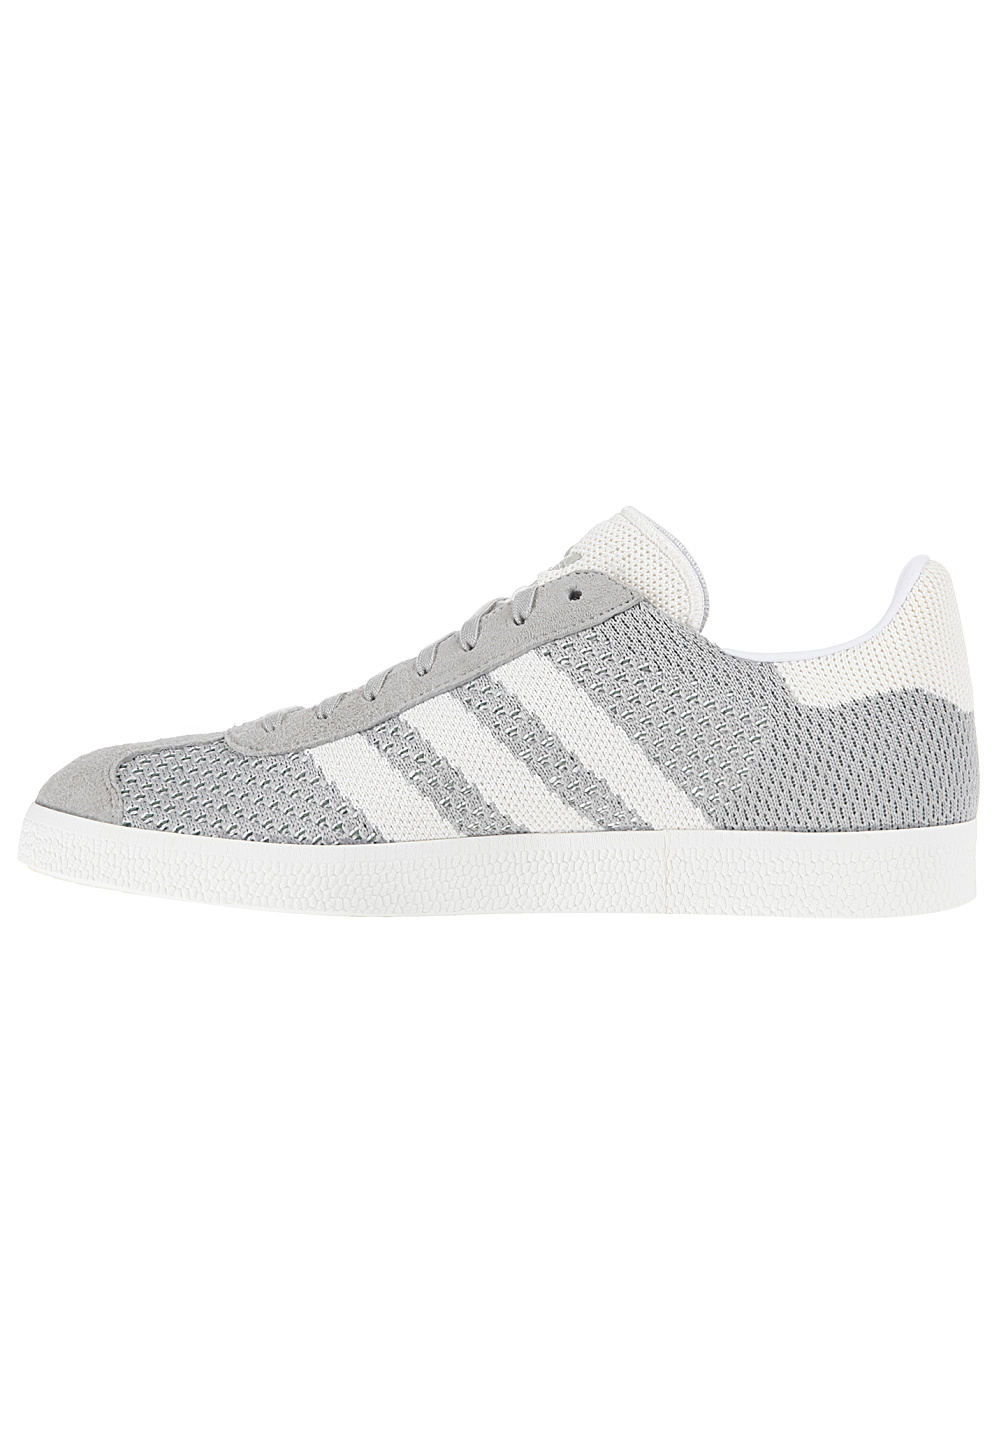 7b65b96d789b Next. -20%. ADIDAS ORIGINALS. Gazelle Primeknit - Sneakers. Regular Price   Save ...